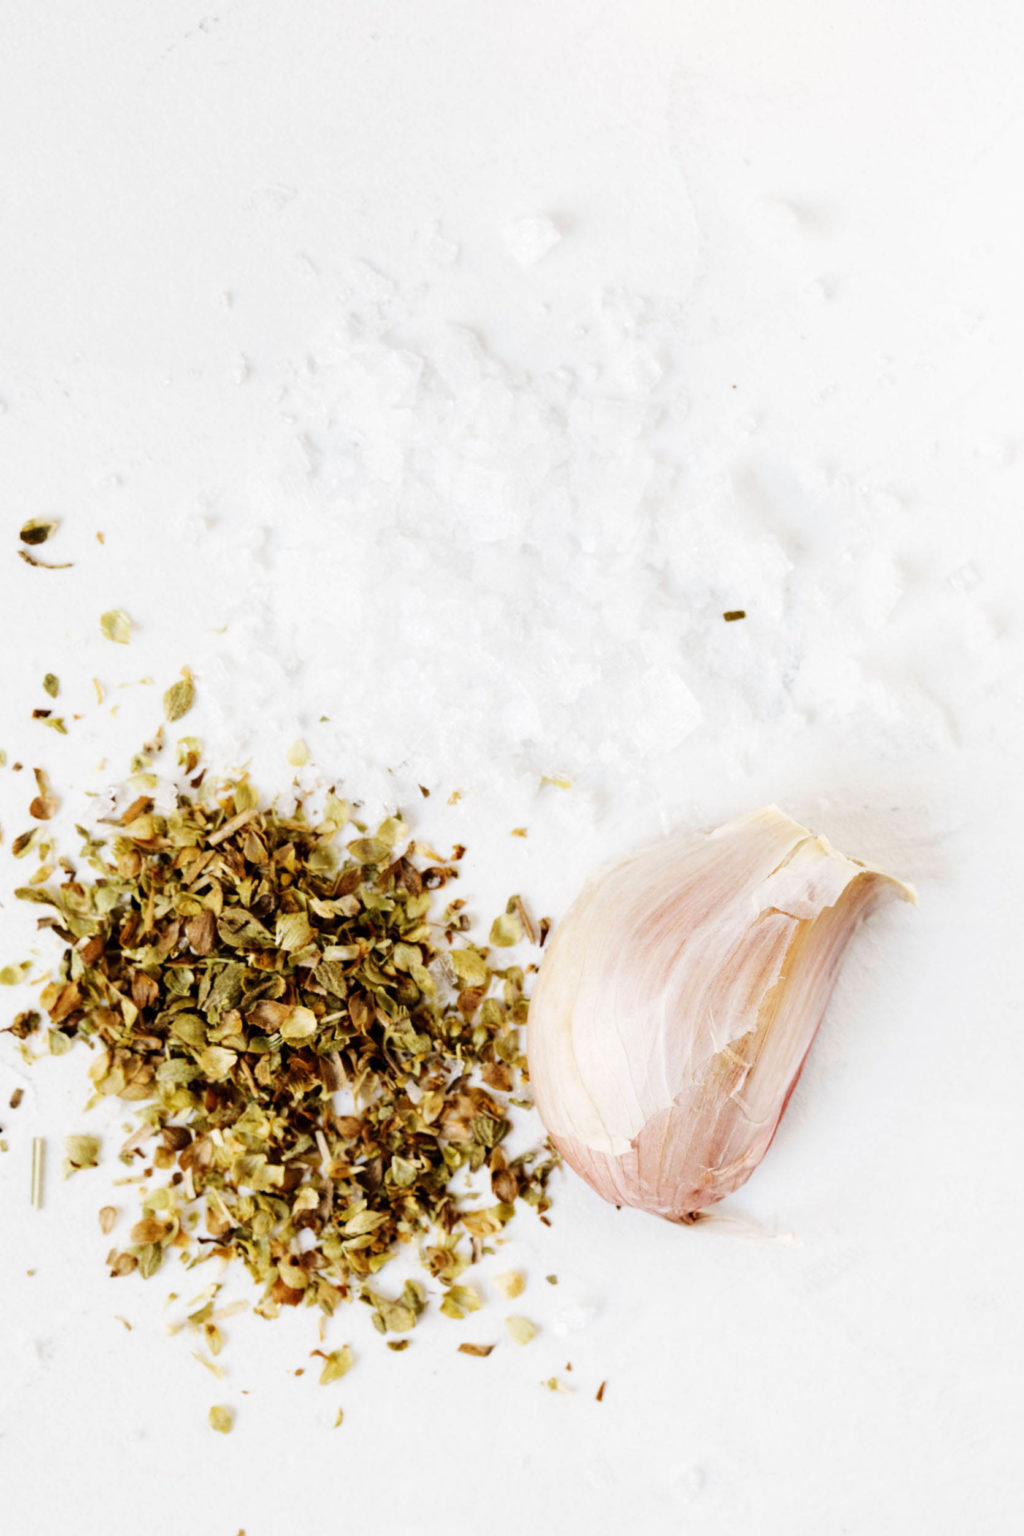 Dried oregano and an unpeeled clove of garlic rest on a white surface.